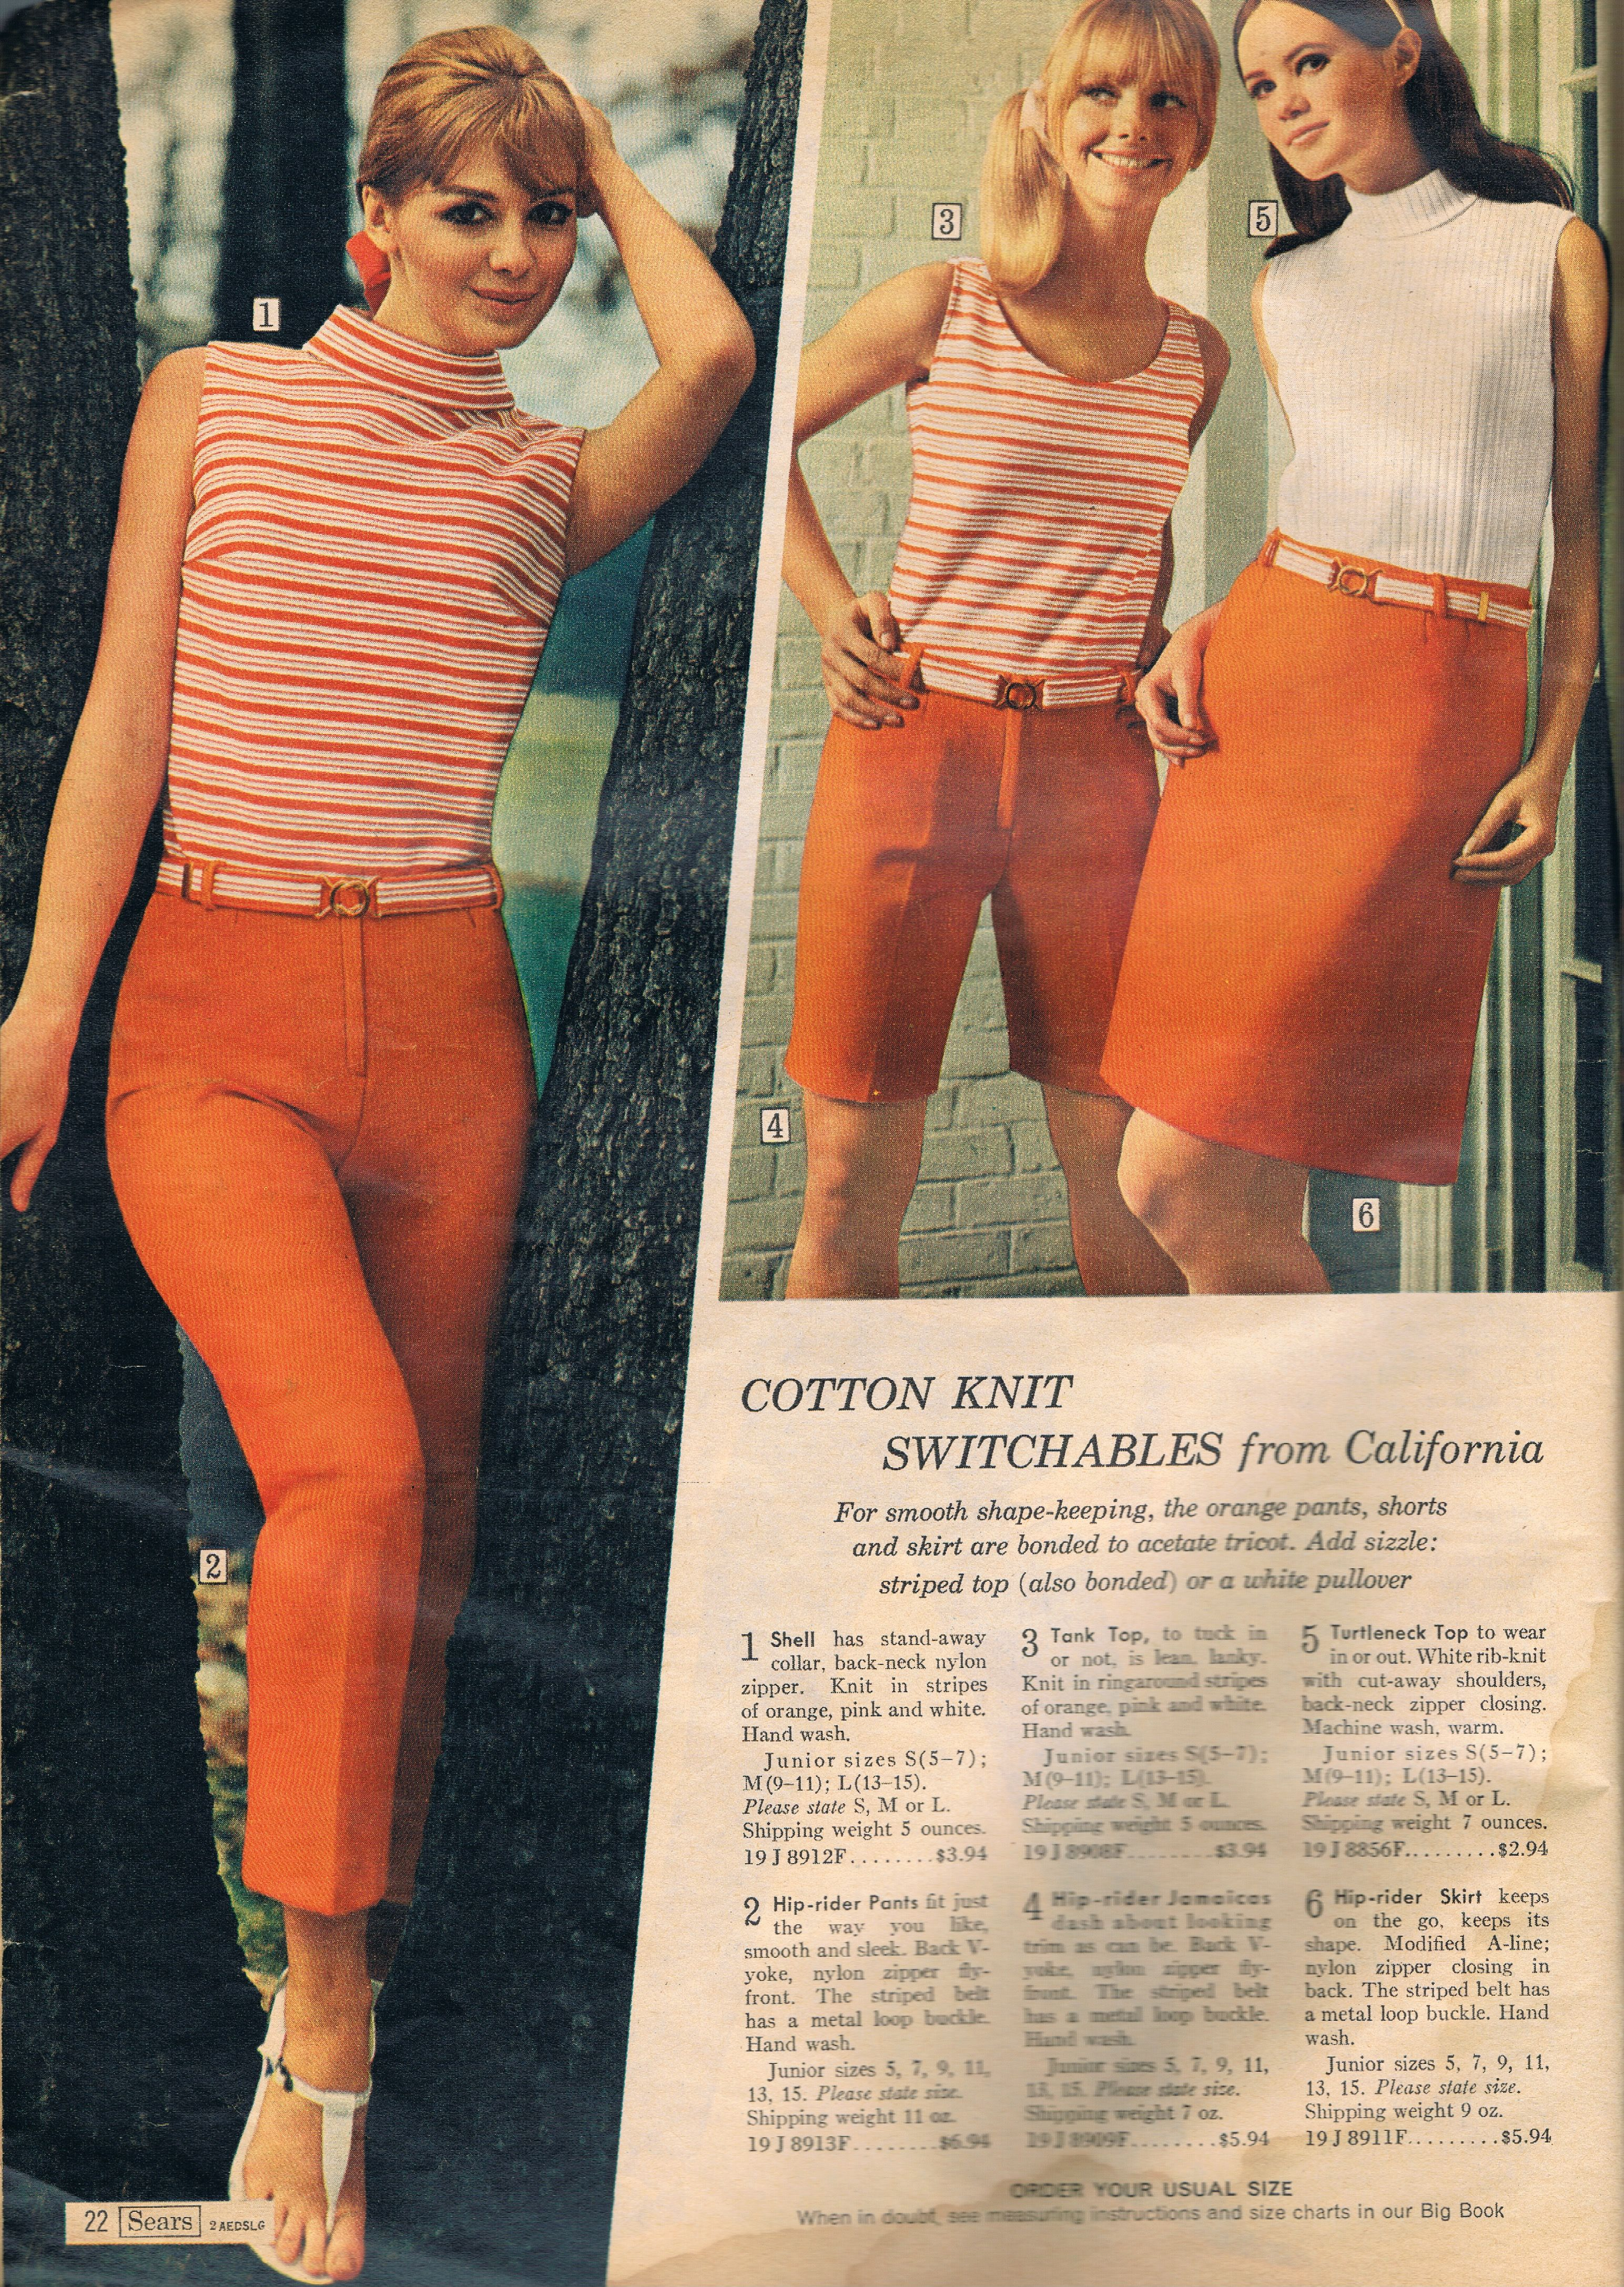 260d2ffe011b7 Sears catalog 1967 I love that so many of the styles in this picture have  made a comeback in recent years  those sandals